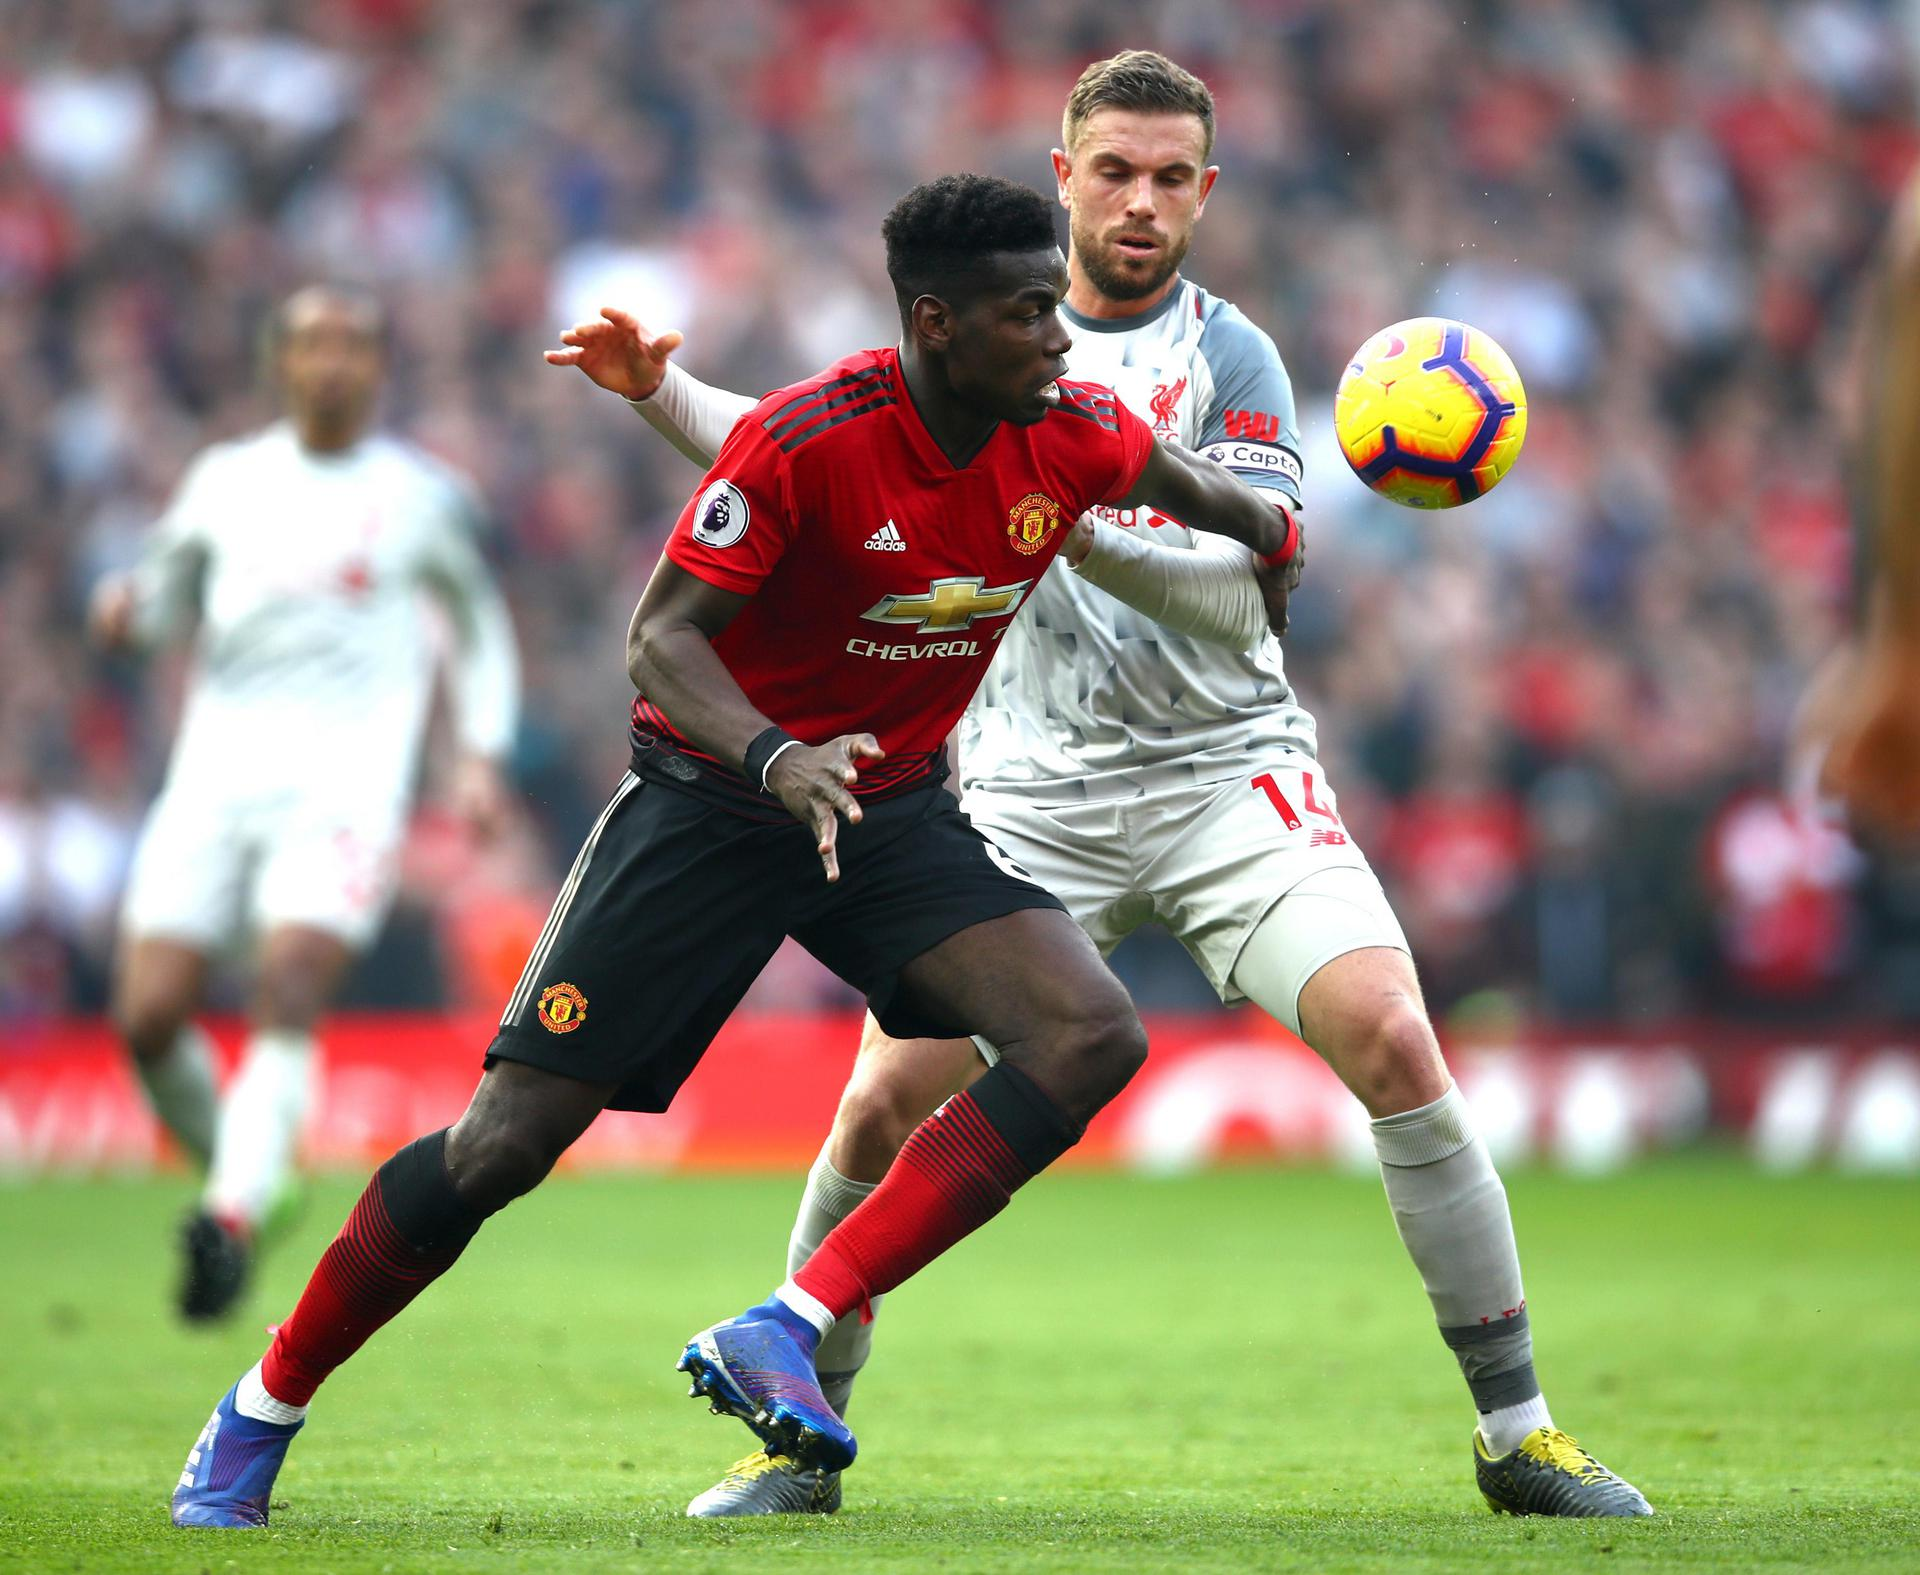 Paul Pogba beats Liverpool's Jordan Henderson to the ball at Old Trafford.